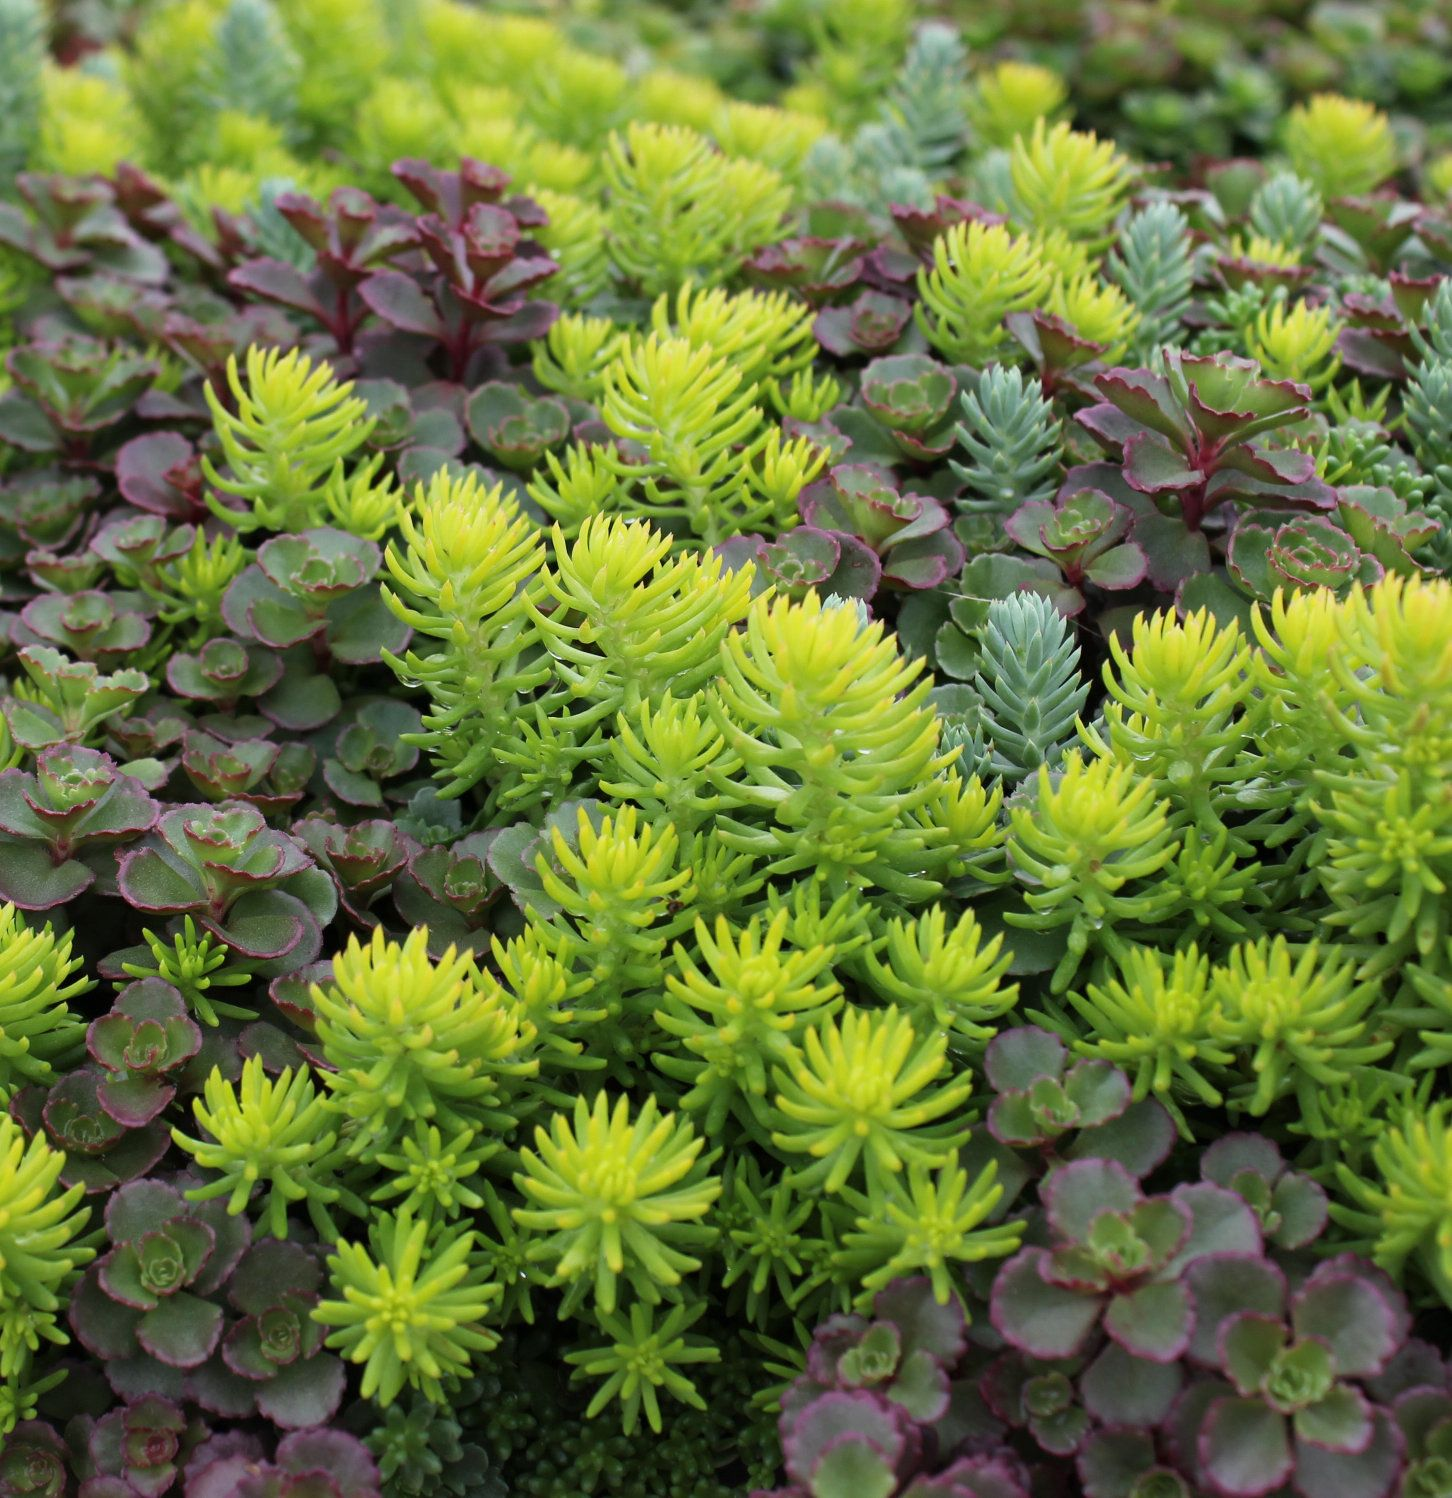 15 Impossible To Kill Outdoor Plants With Images Sedum Garden Outdoor Plants Sedum Plant